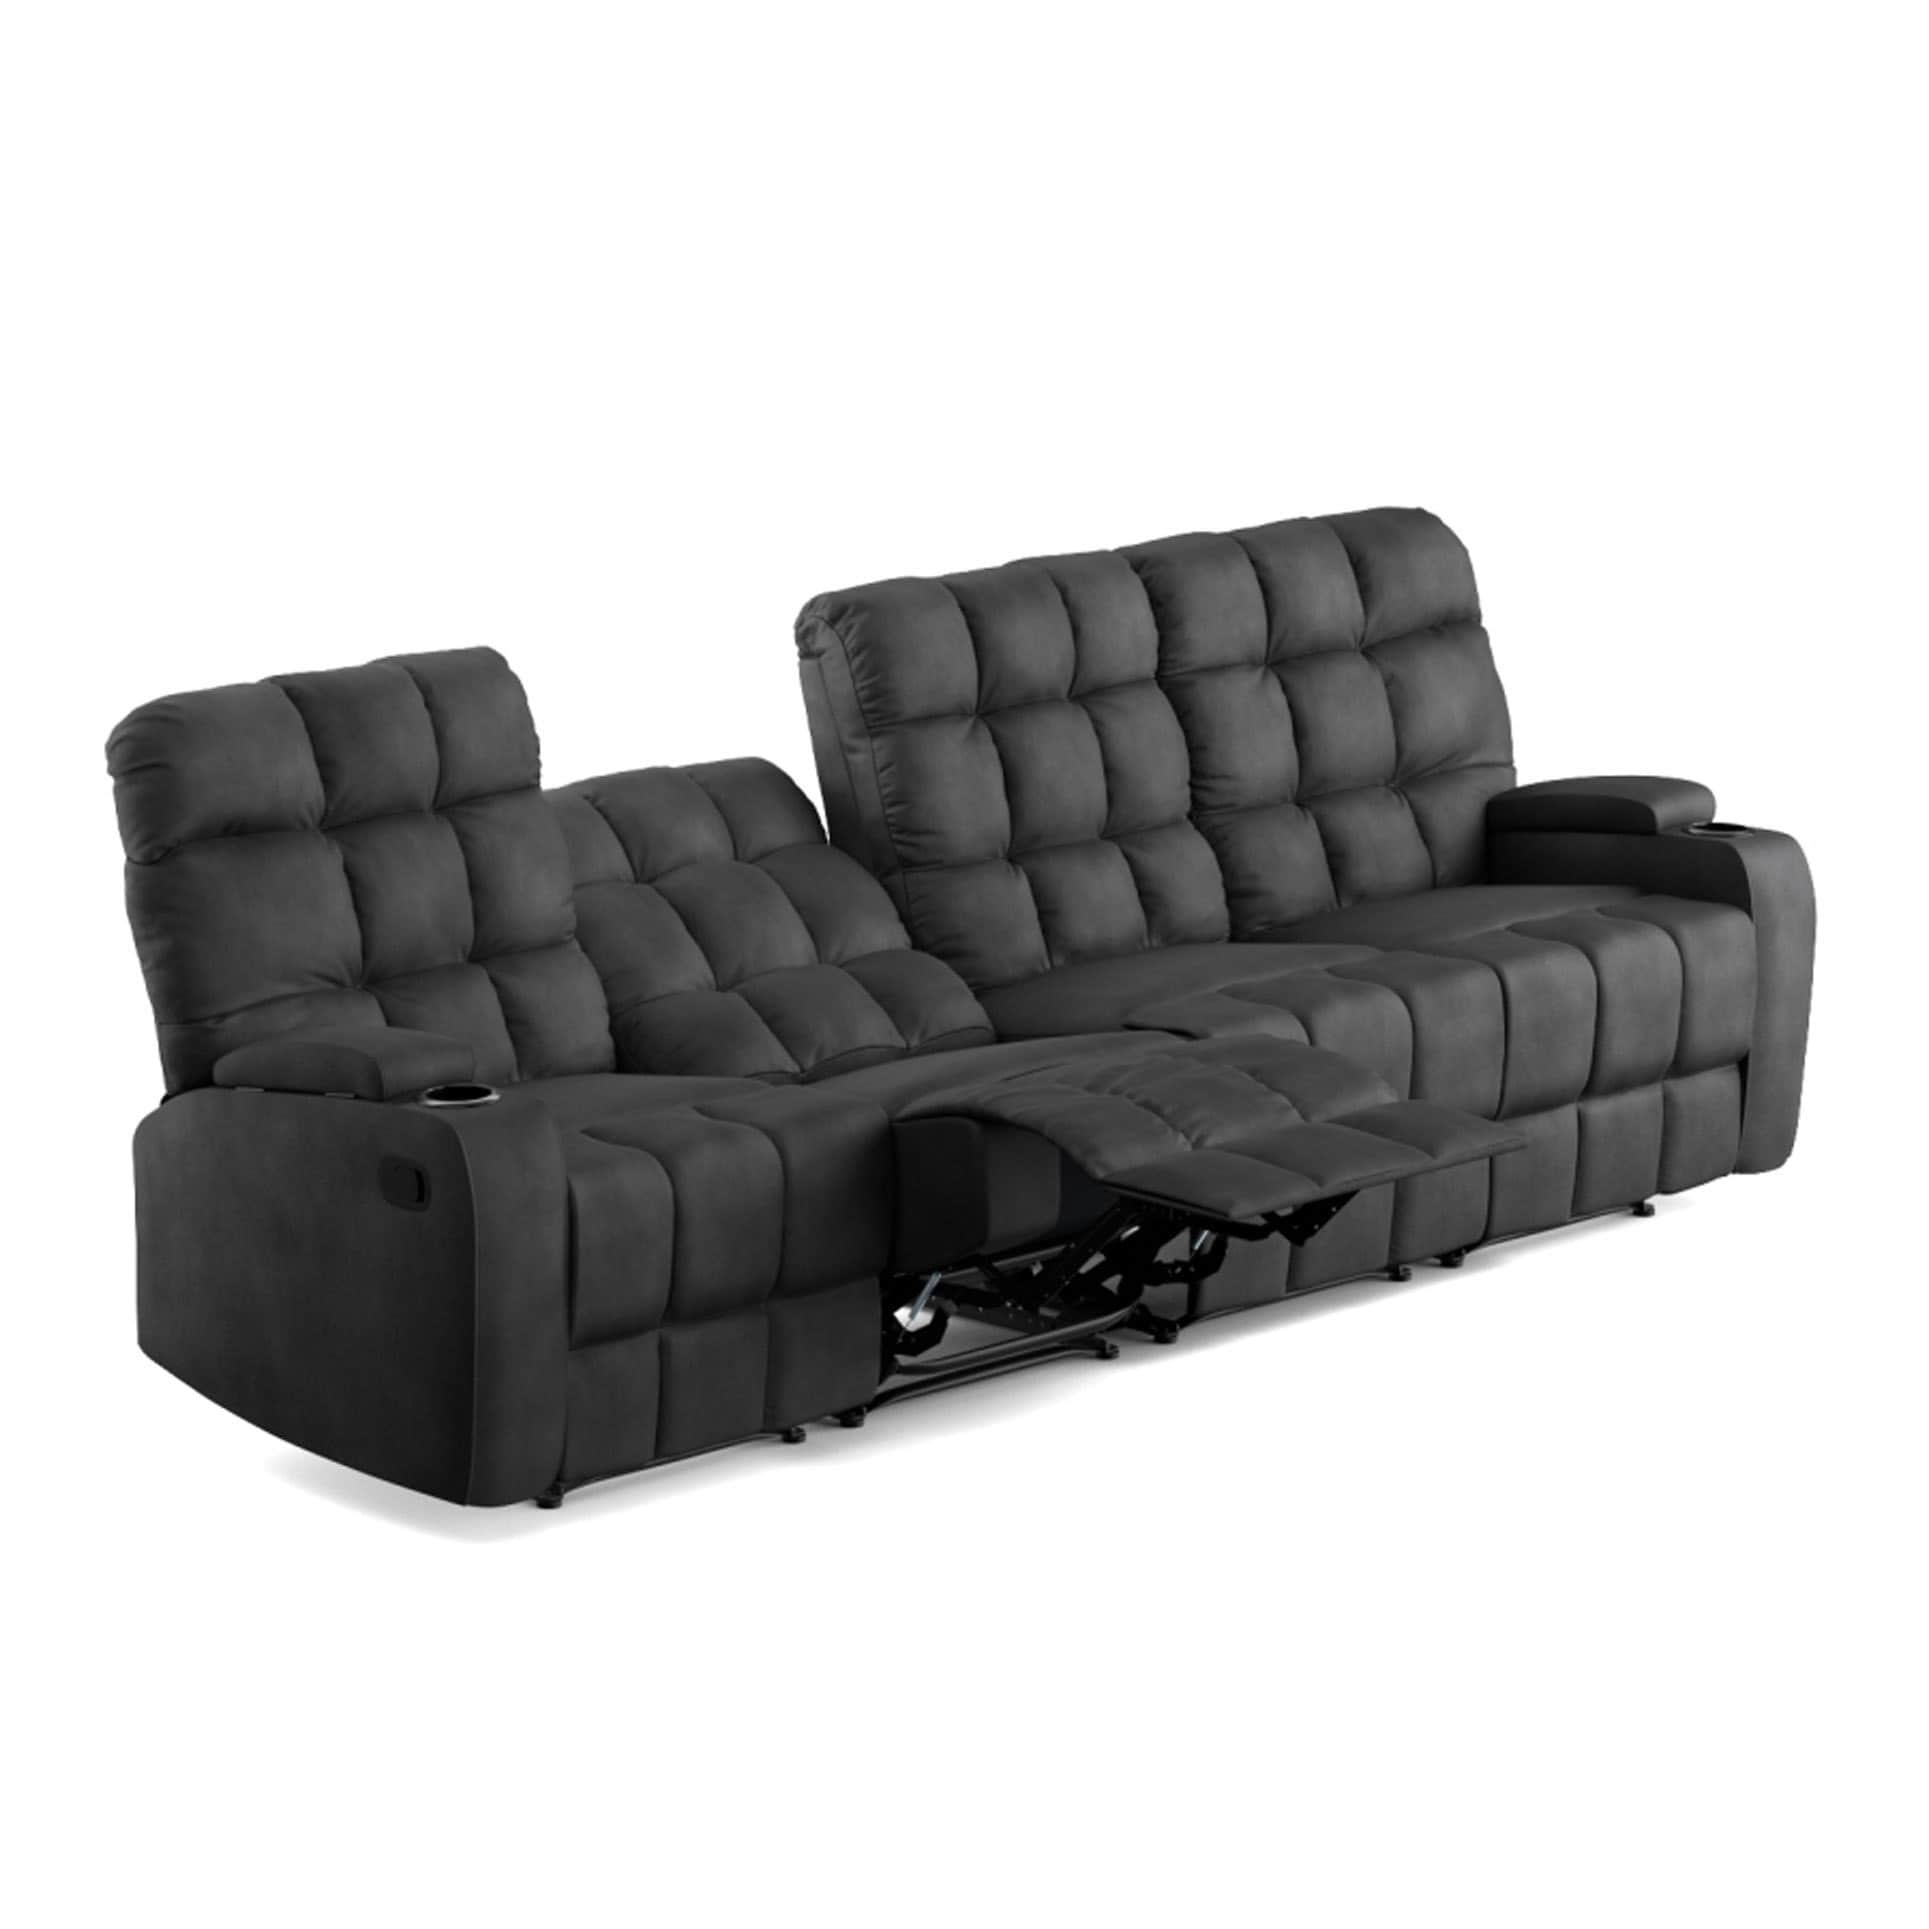 g sofa leather double plan recliner tr firth seater electric in